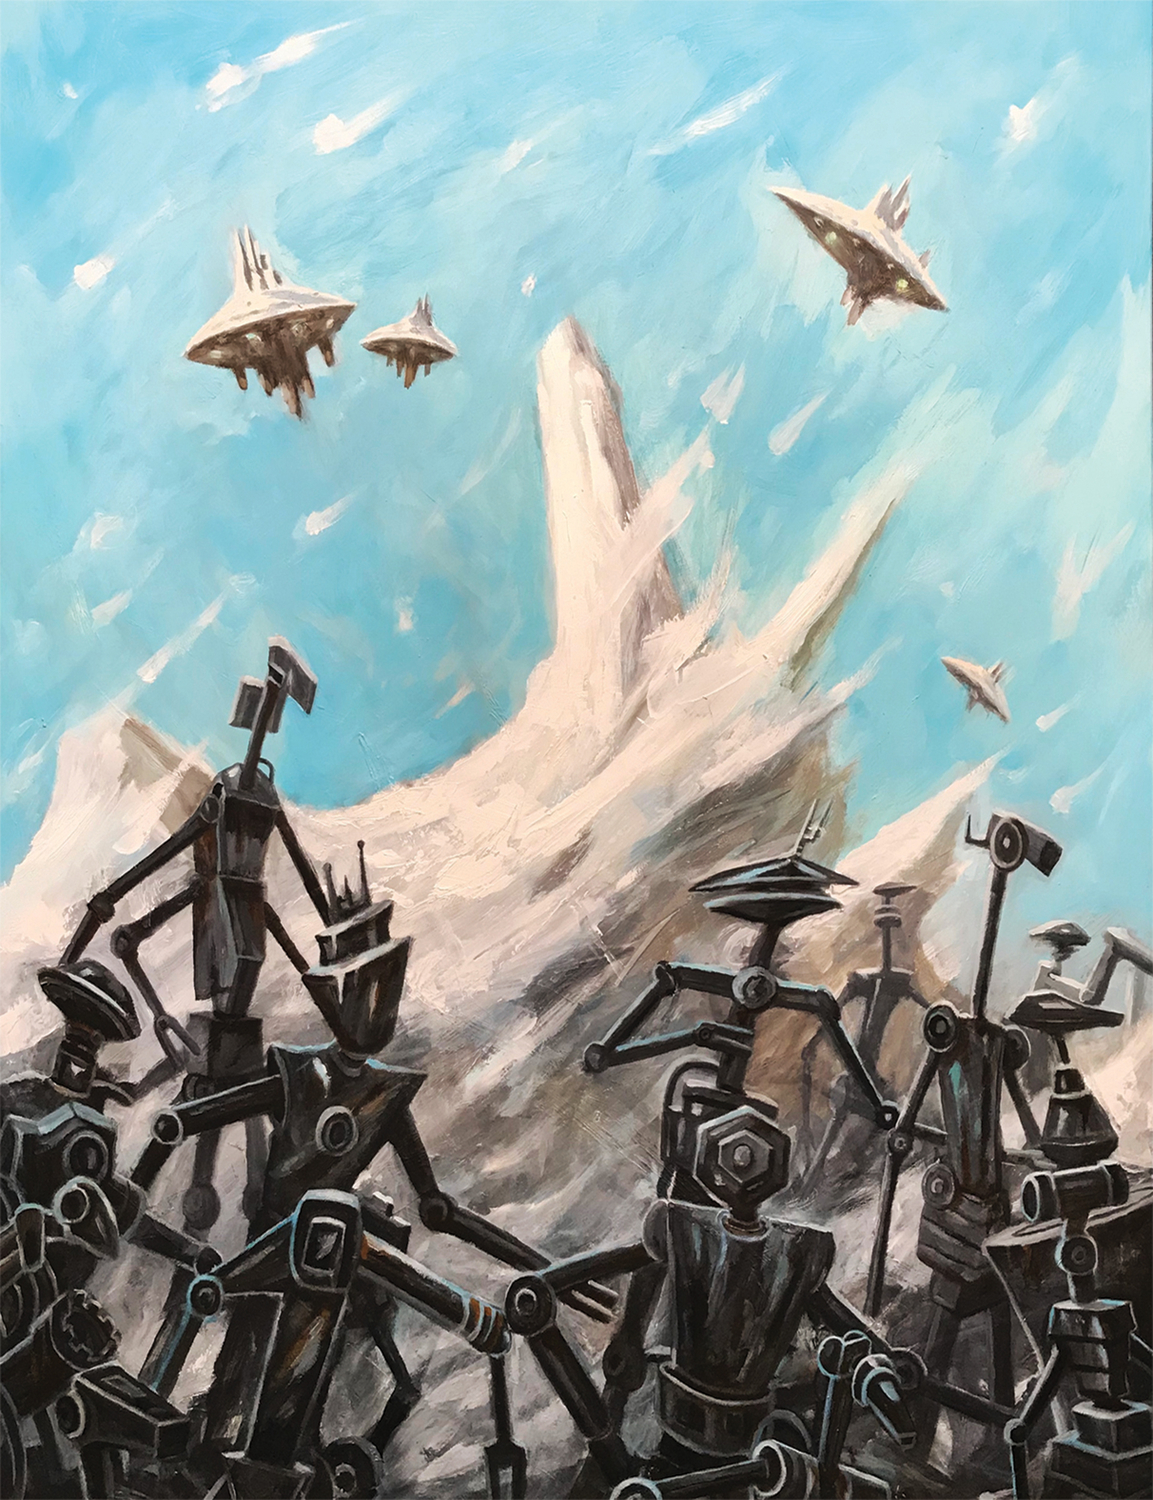 The March of the Forgotten Artwork by Brian McElligott